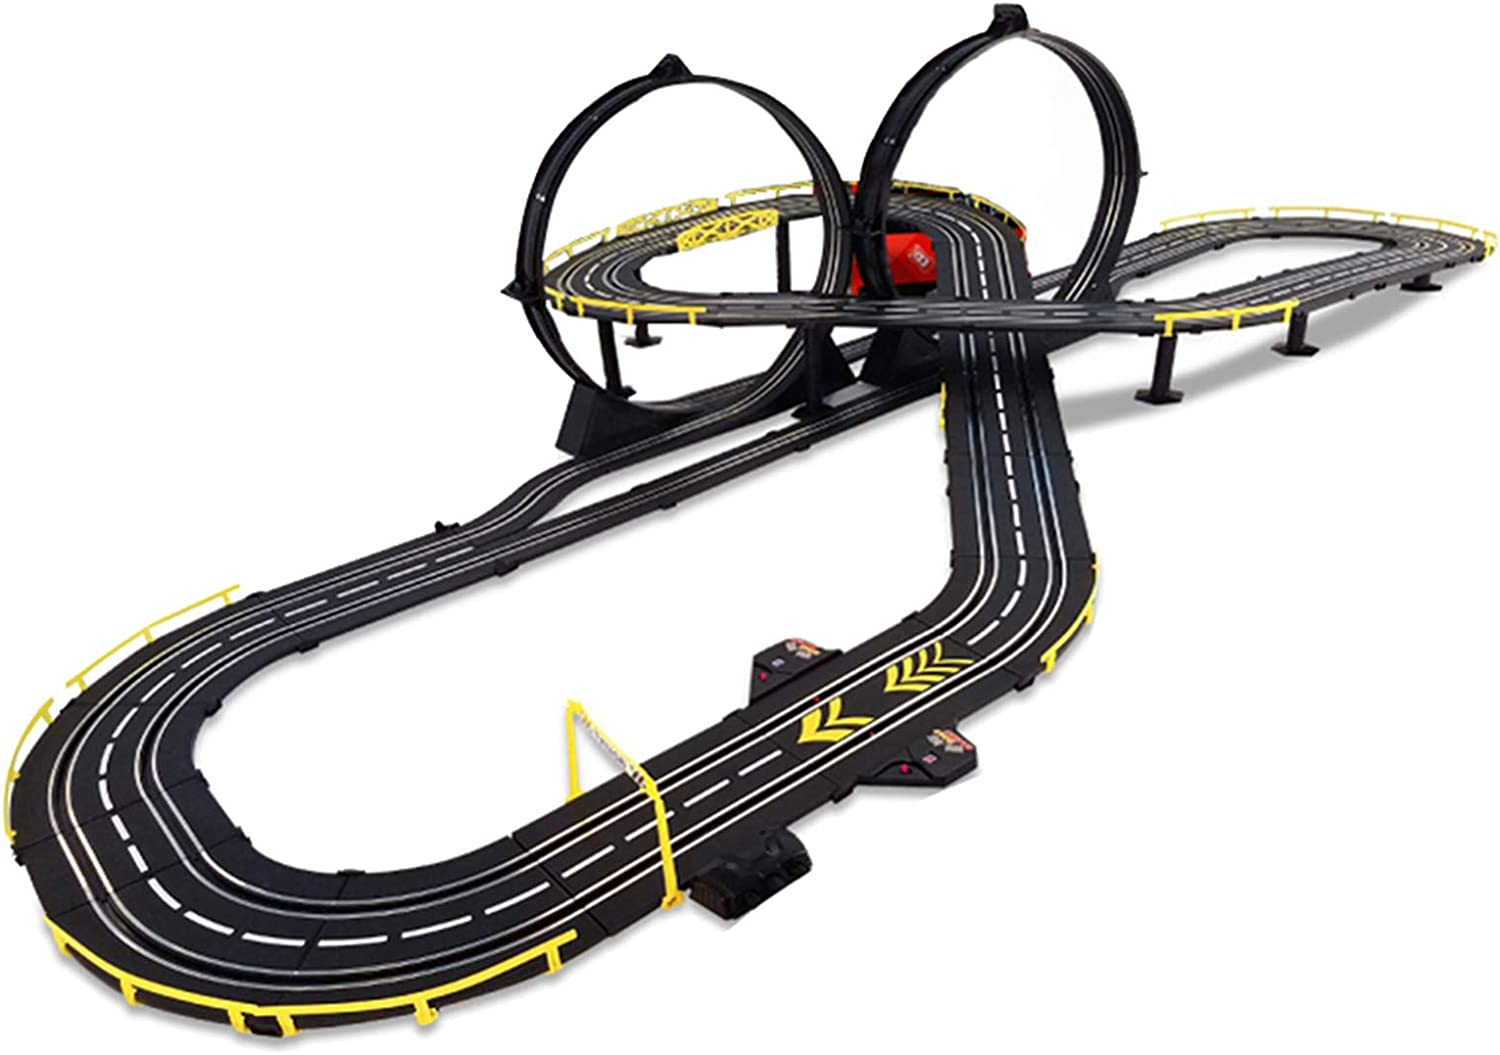 LINGLING Slot Car Race Tracks Manufacturer regenerated product Racing Electric Mesa Mall T Children's Track